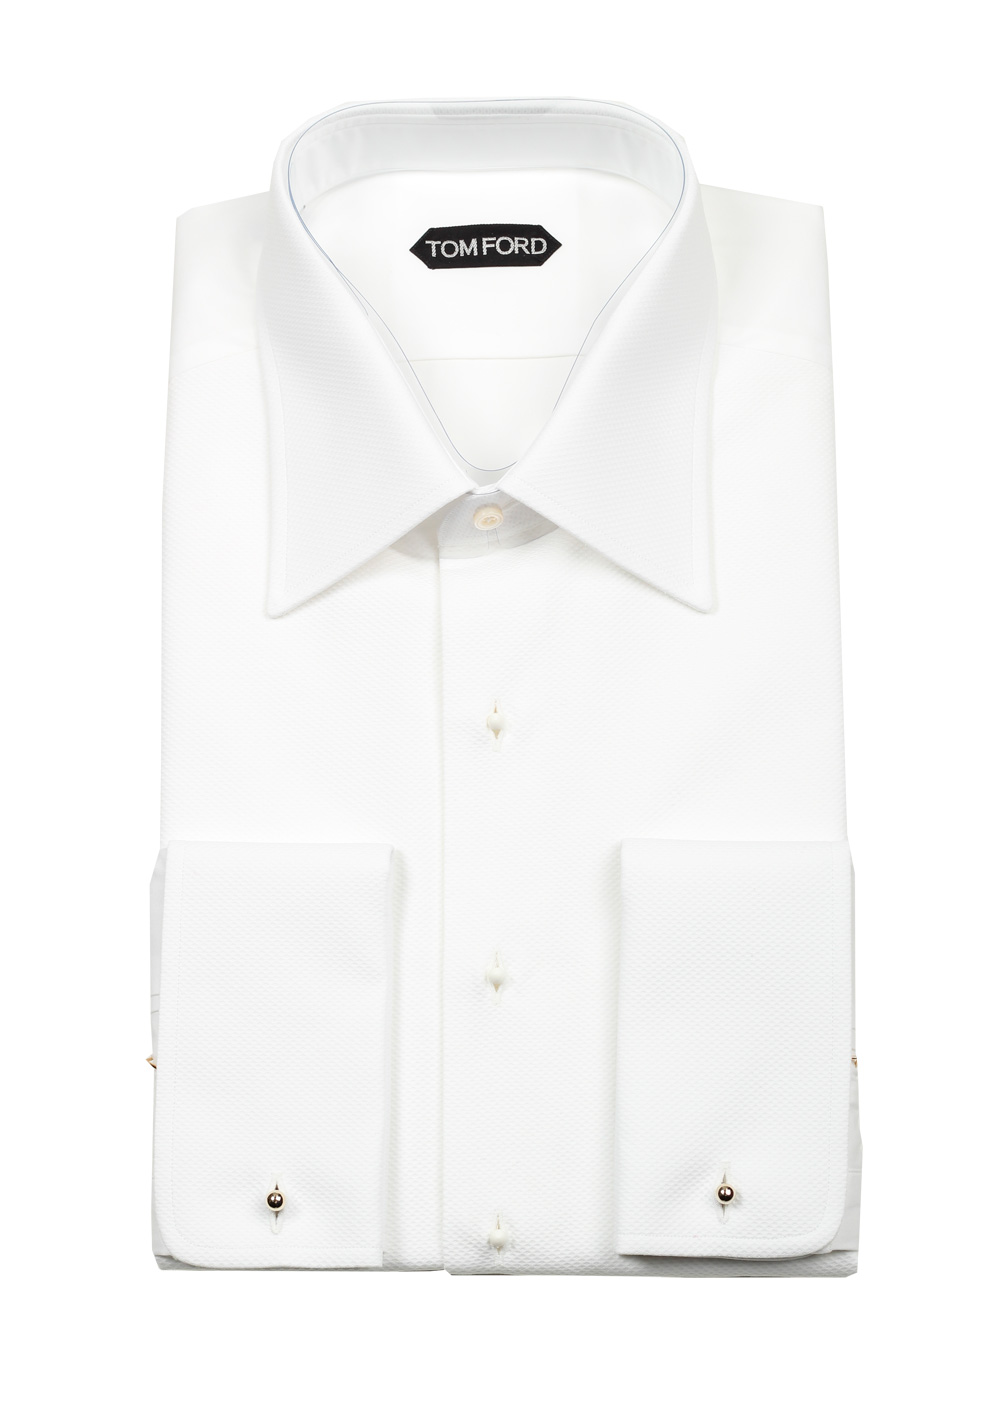 TOM FORD Solid White Pique Tuxedo Shirt With French Cuffs | Costume Limité